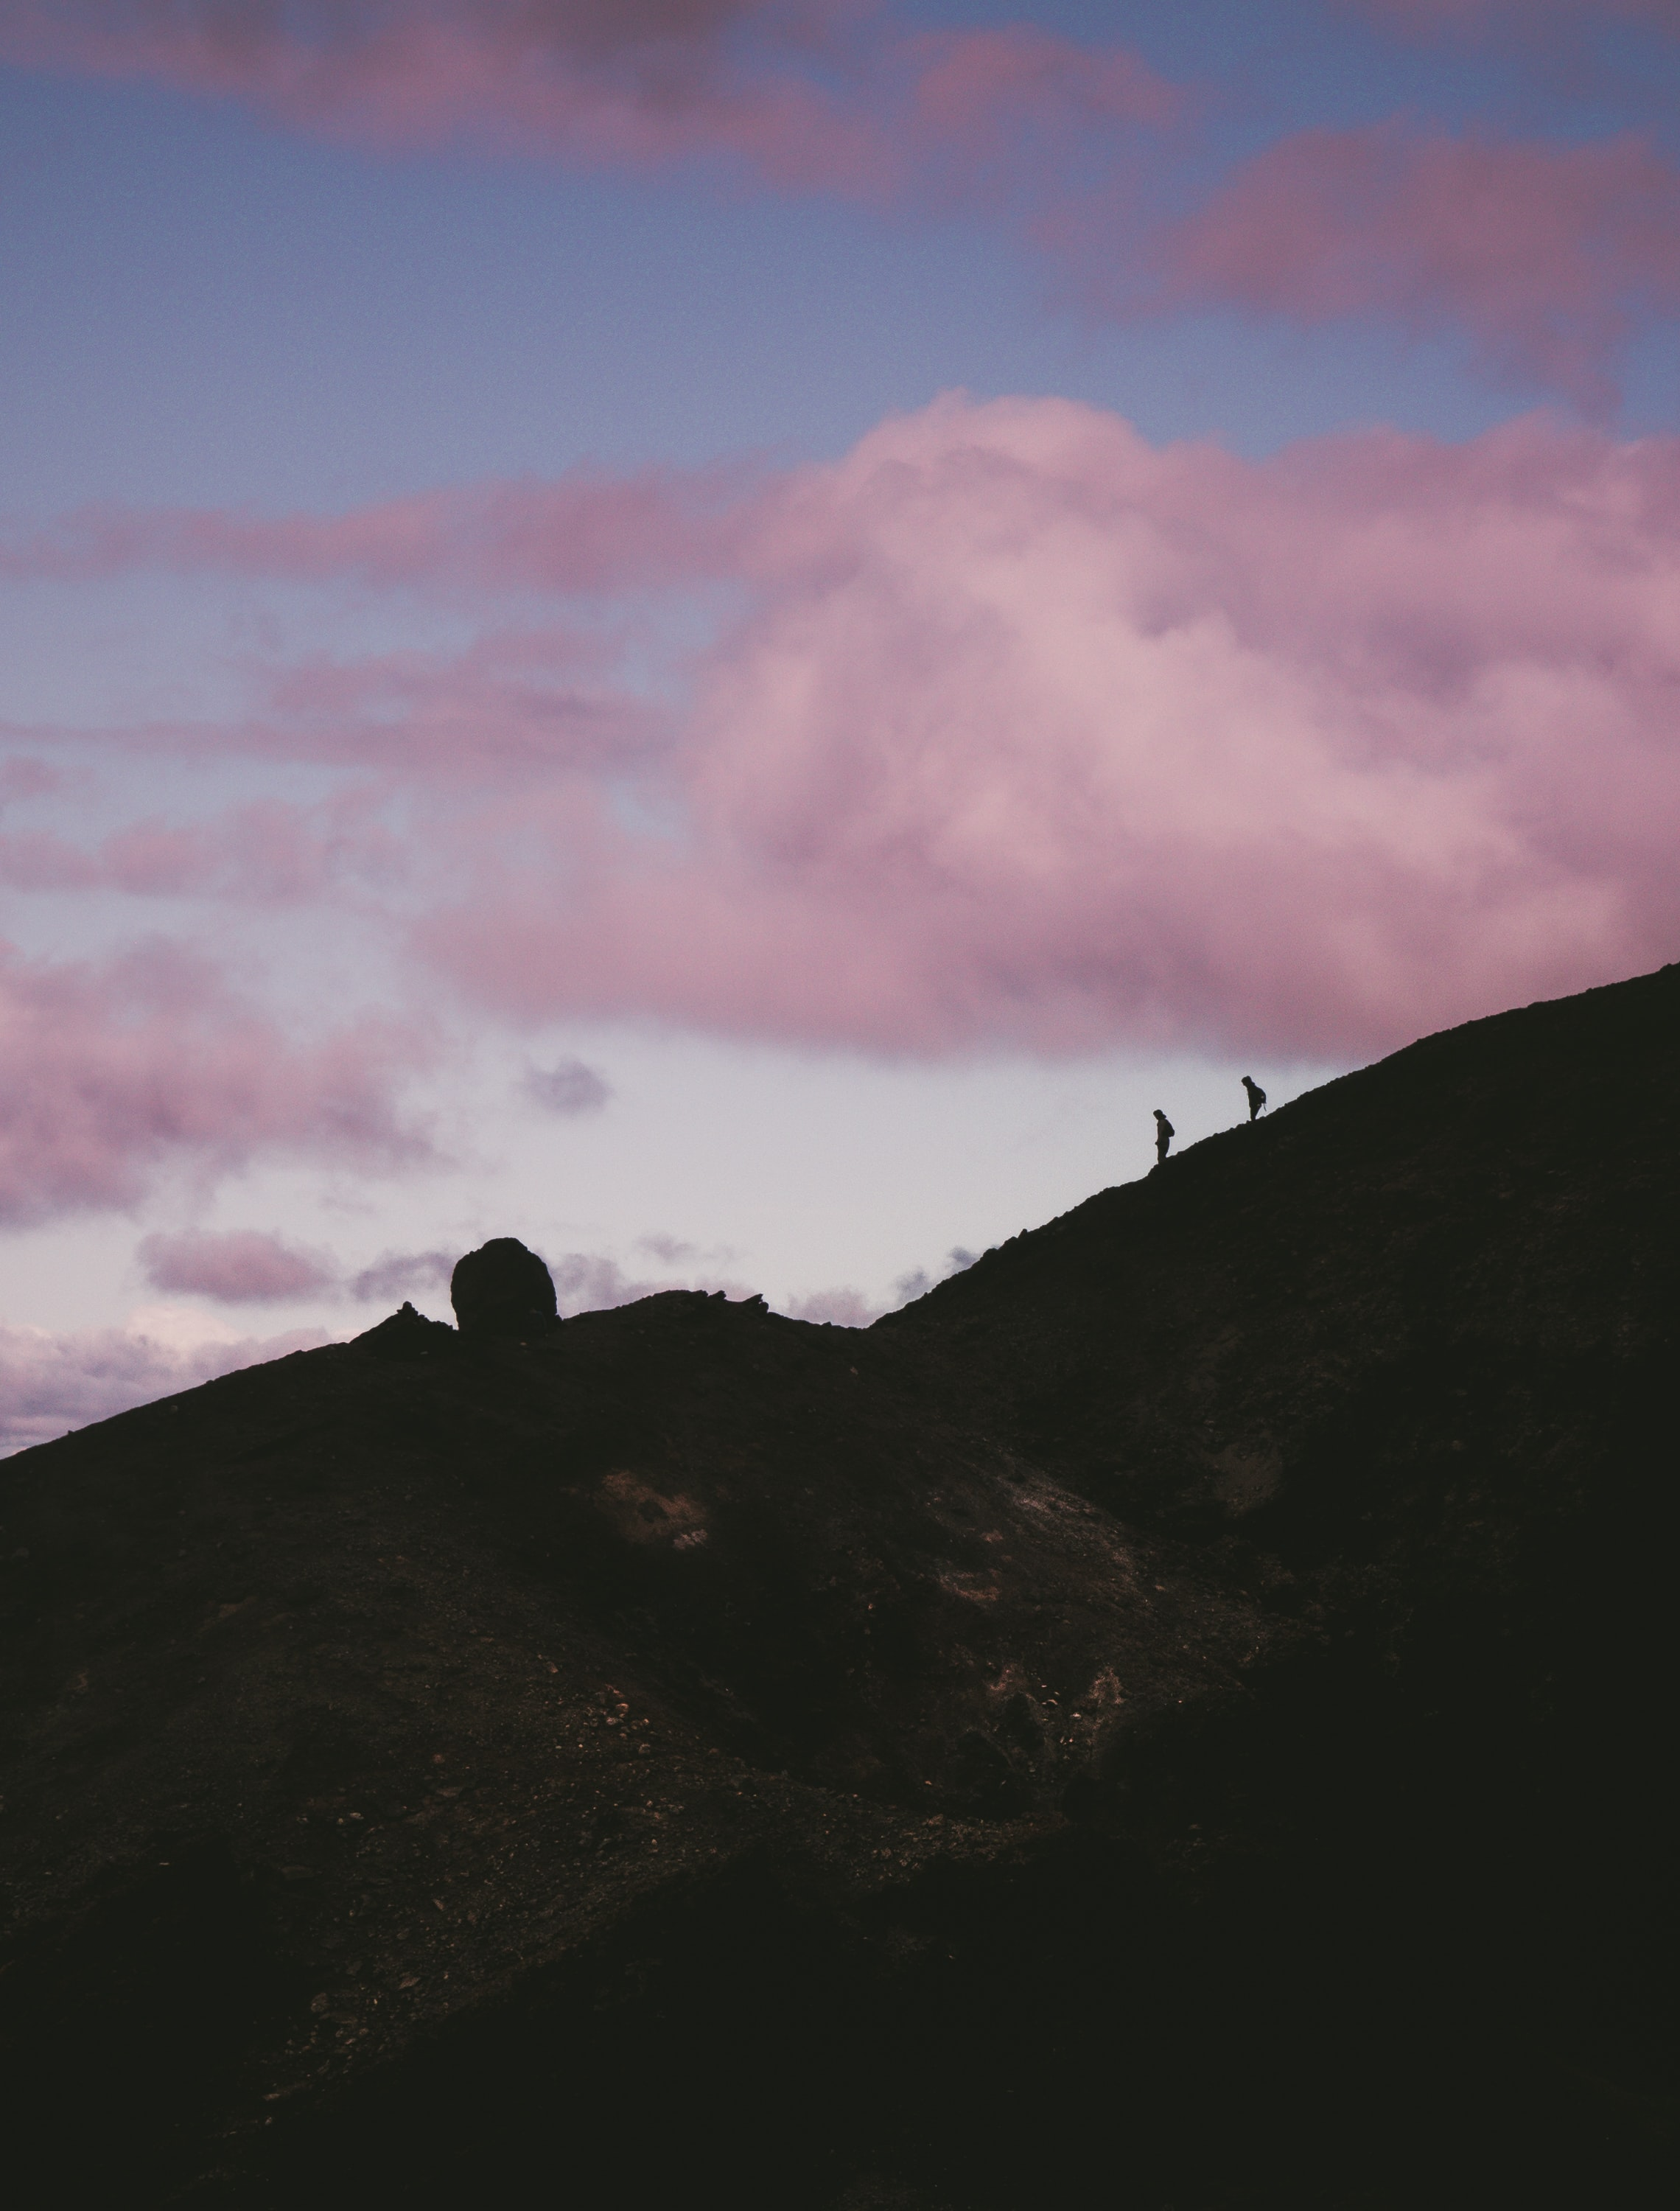 two silhouette of person walking down the hill